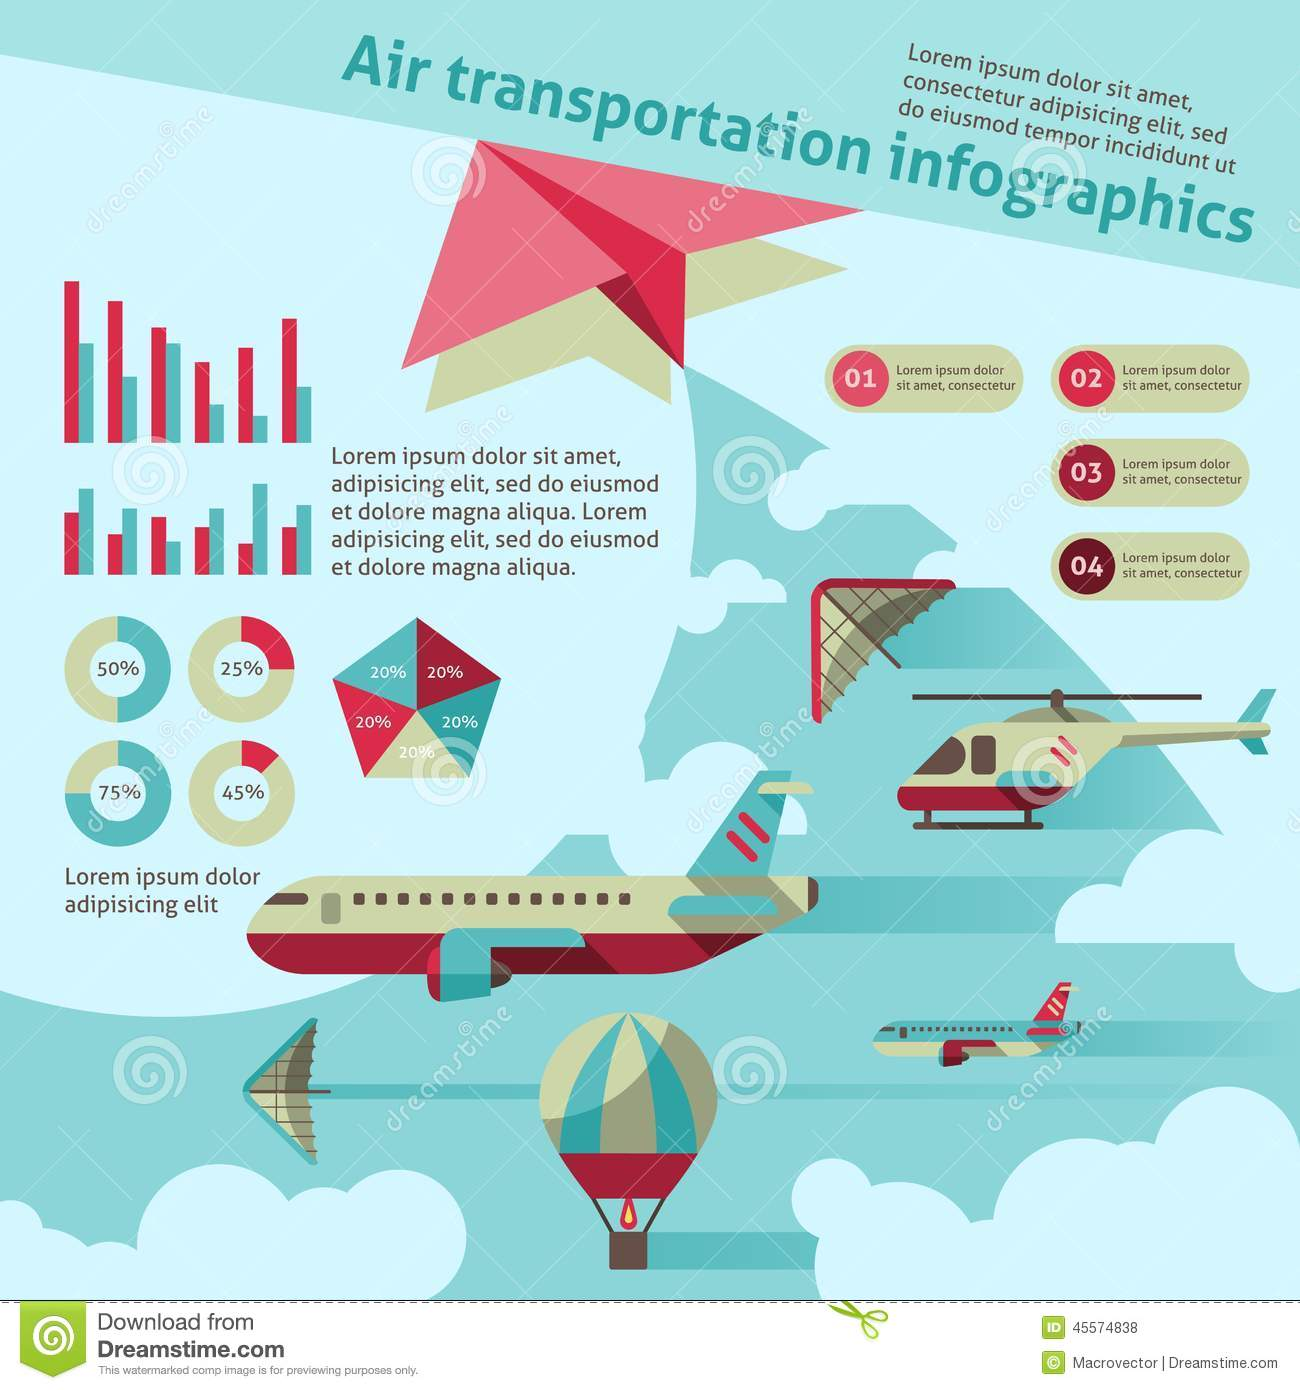 Air transport infographic stock vector. Image of business ...